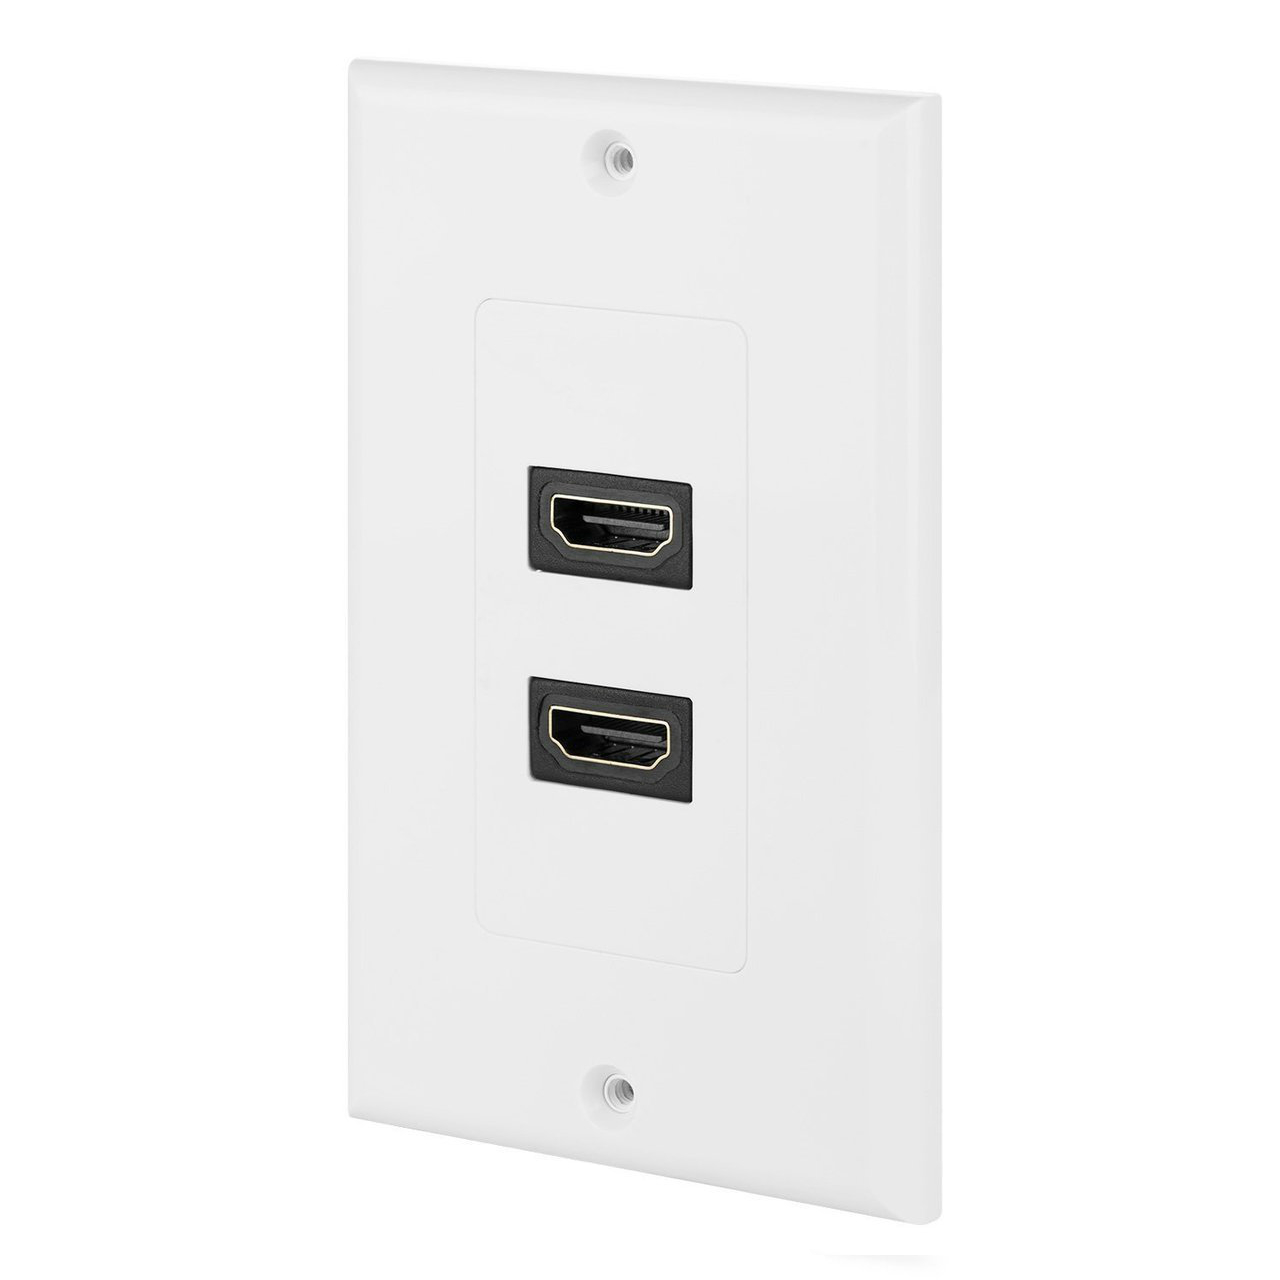 Hdmi Outlet 2port Dual Outlet Decora Hdmi Female Wall Plate White